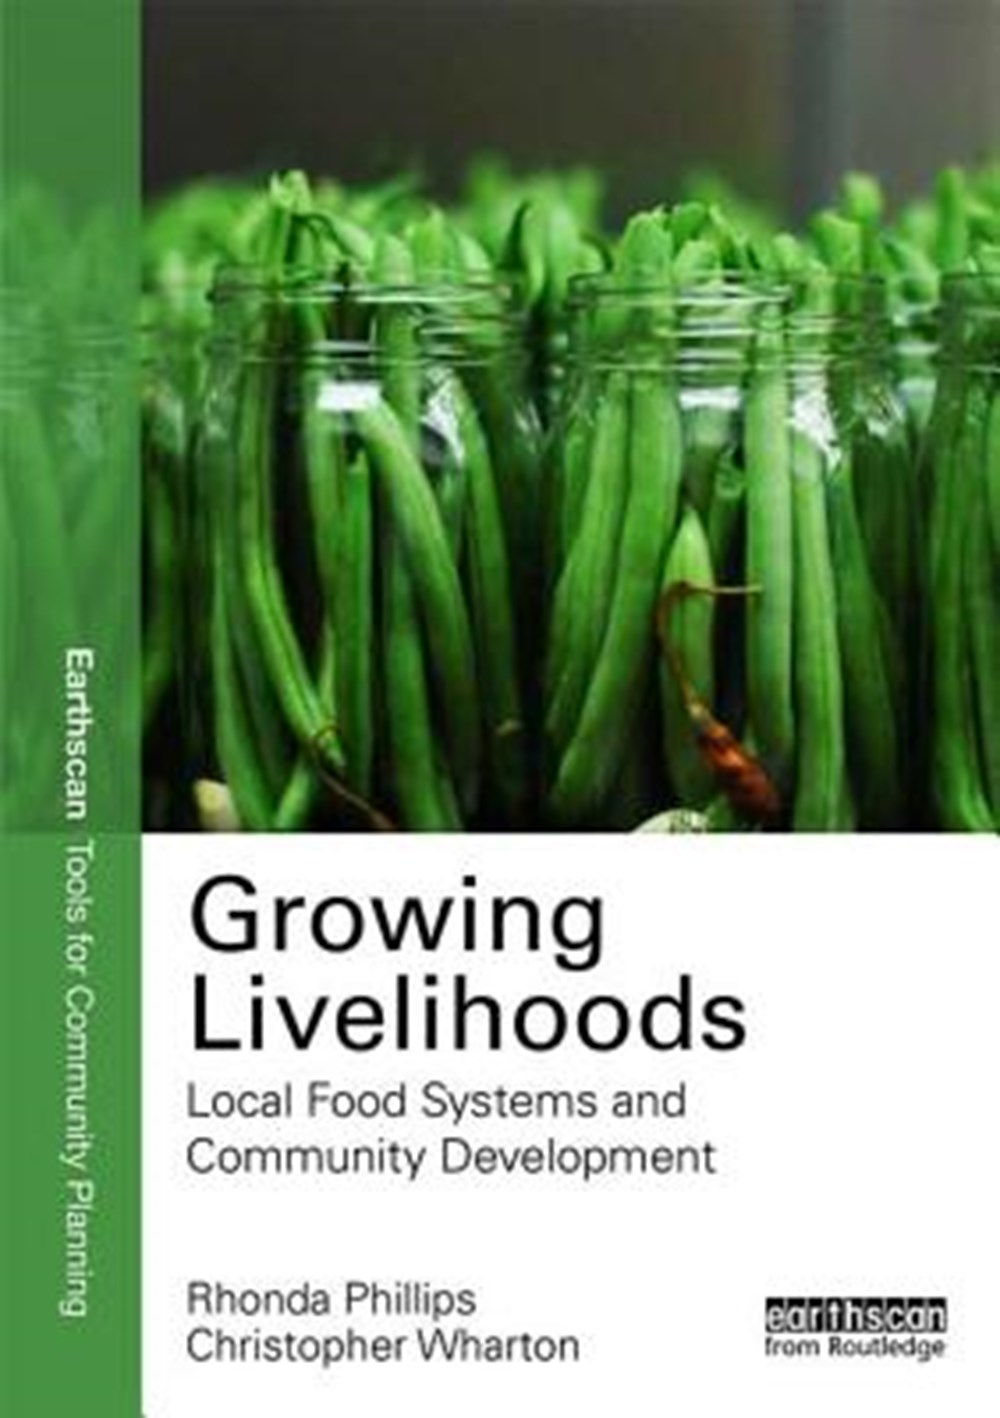 Growing Livelihoods Local Food Systems and Community Development